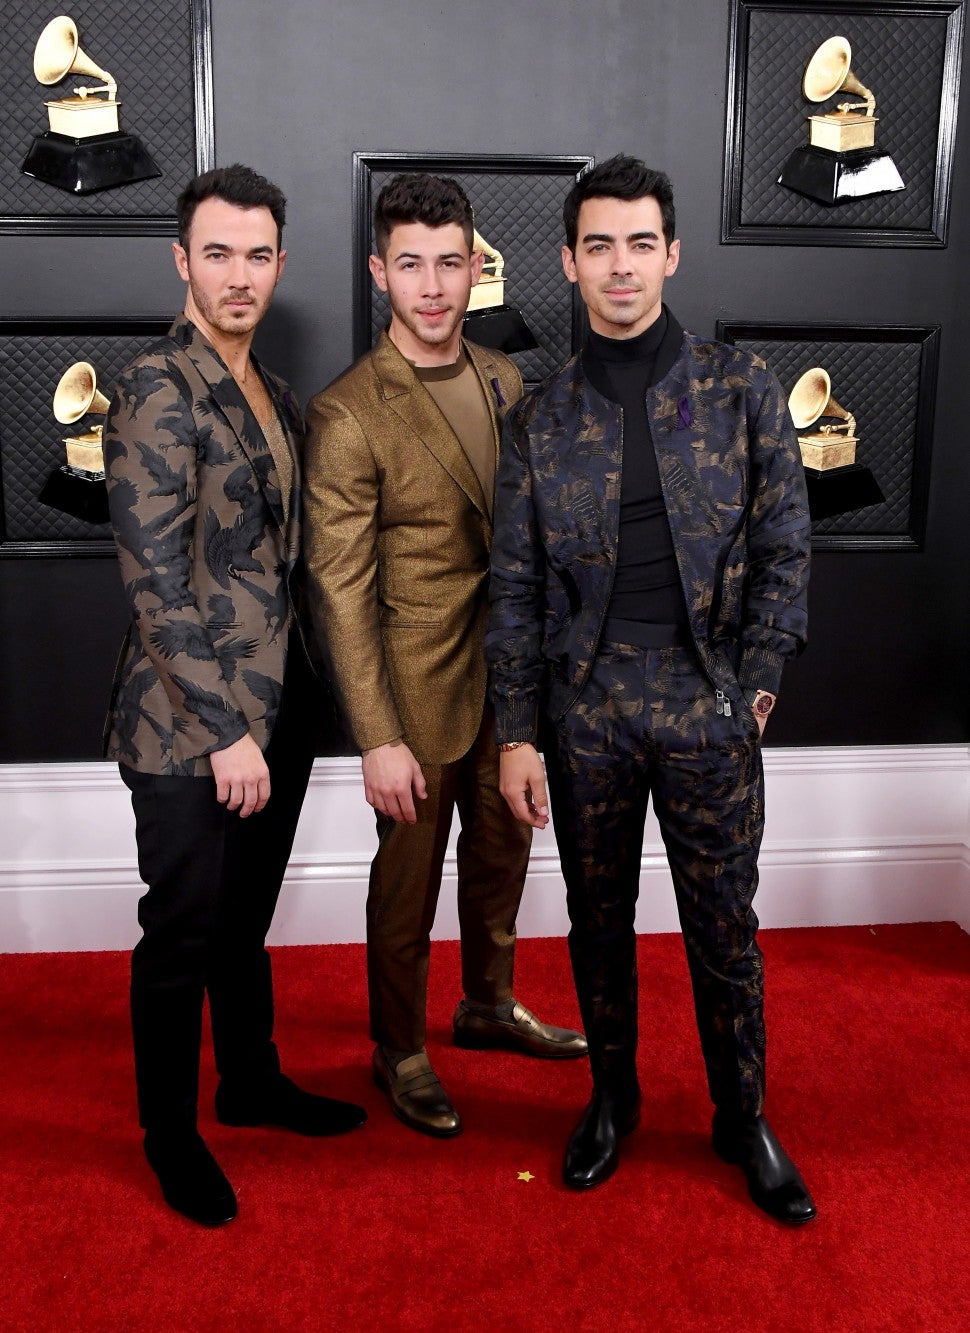 The Jonas Brothers at 2020 GRAMMYs